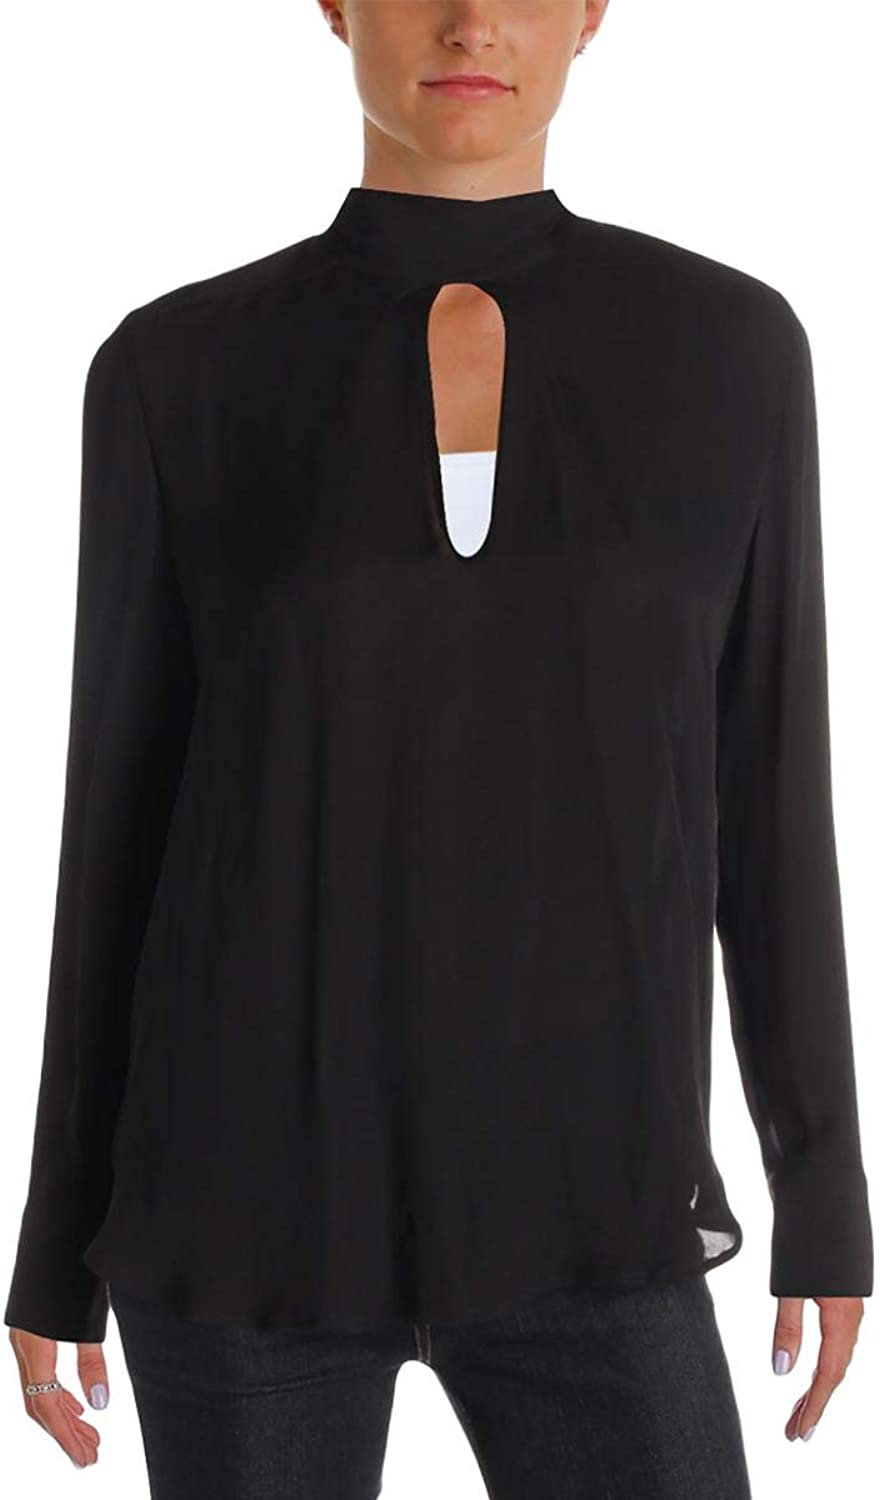 Chelsea & Walker Womens Cuffed Sleeves Sheer Blouse